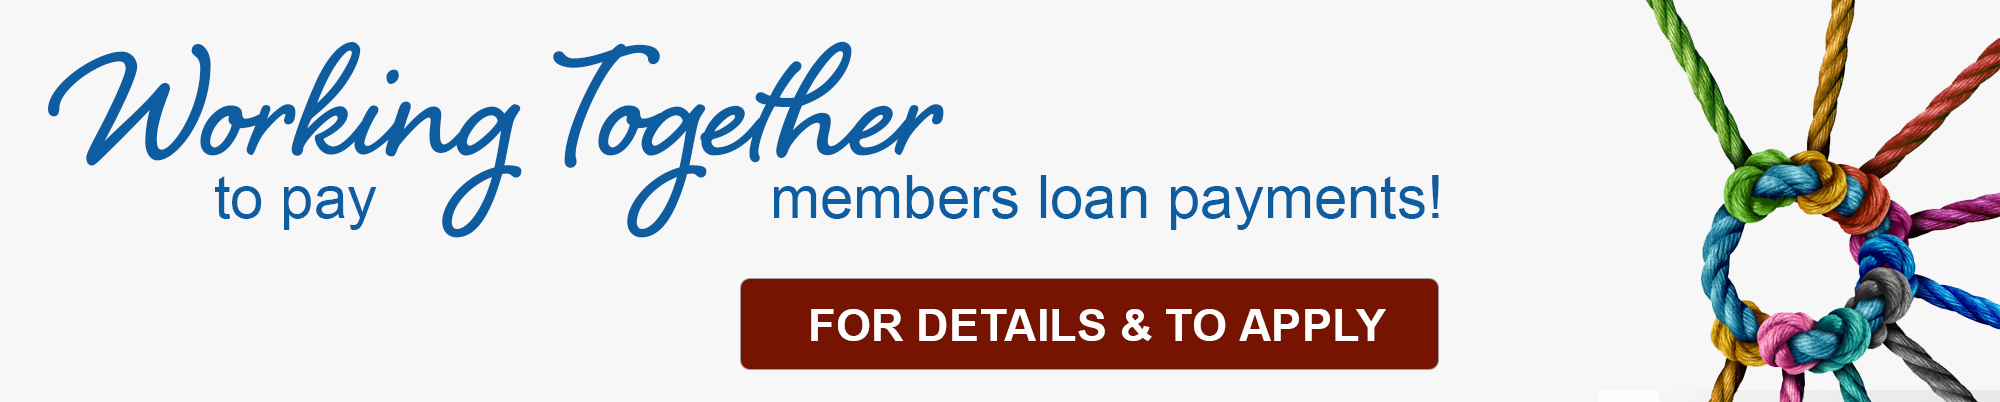 Working together Loan Payments